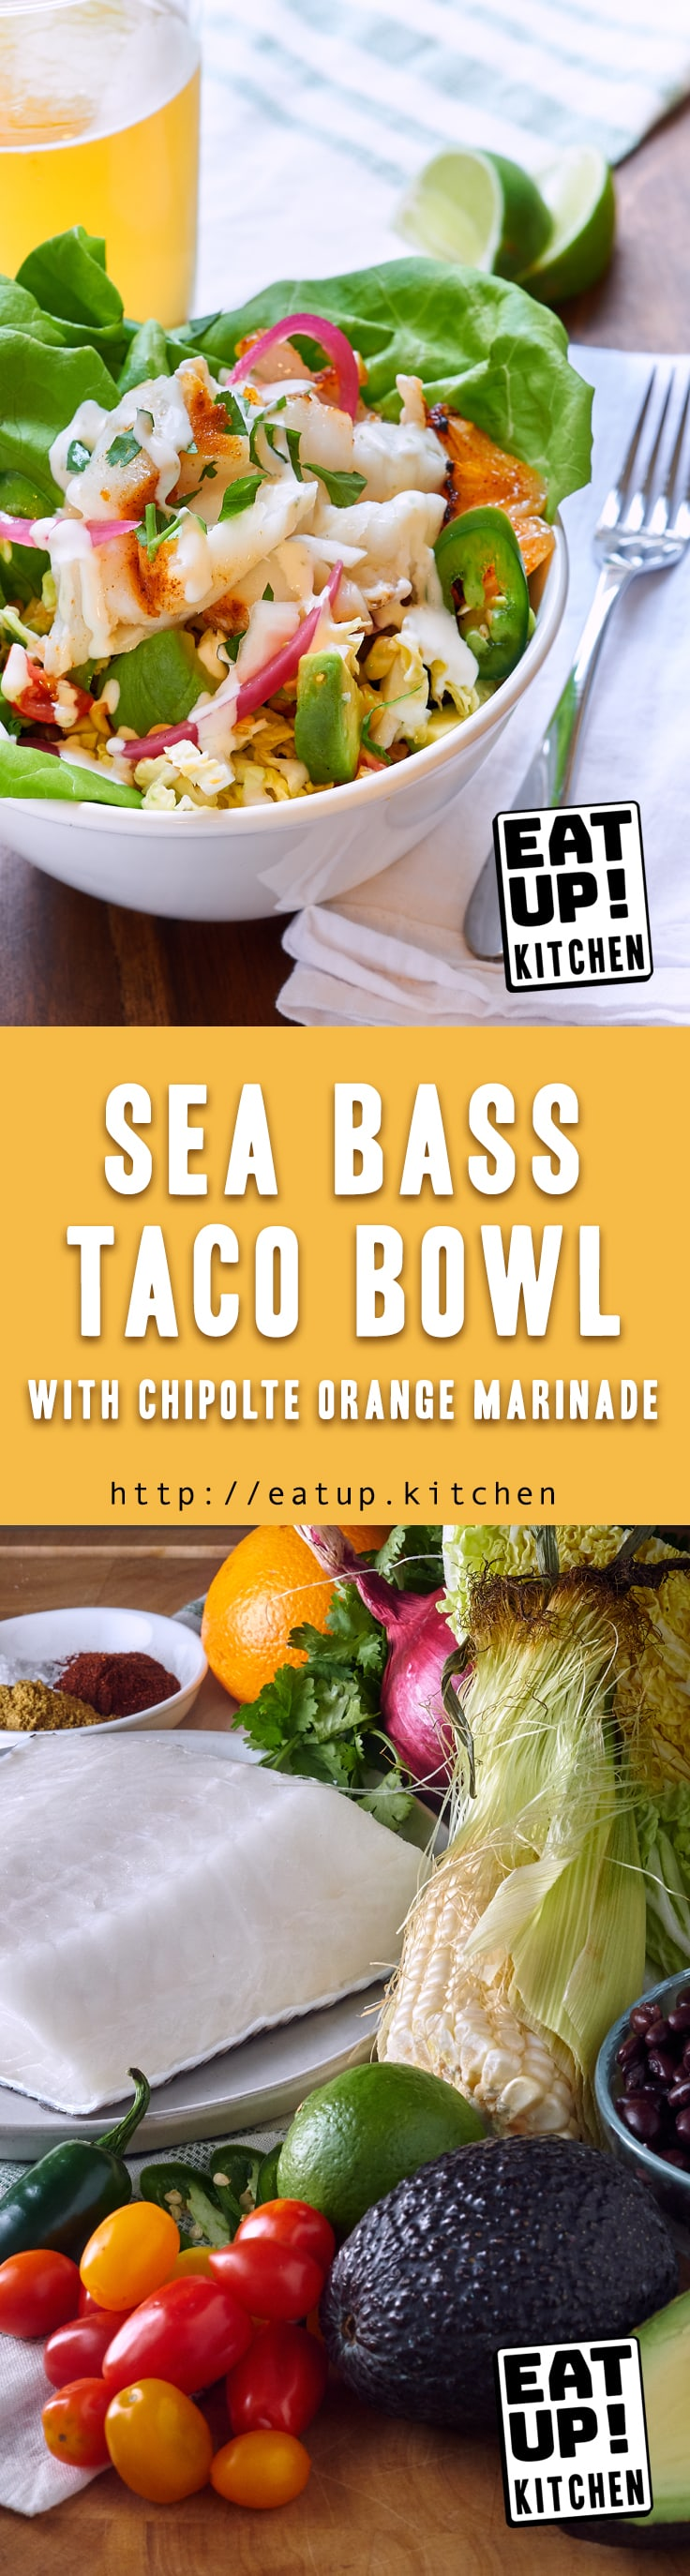 Sea Bass Taco Bowl